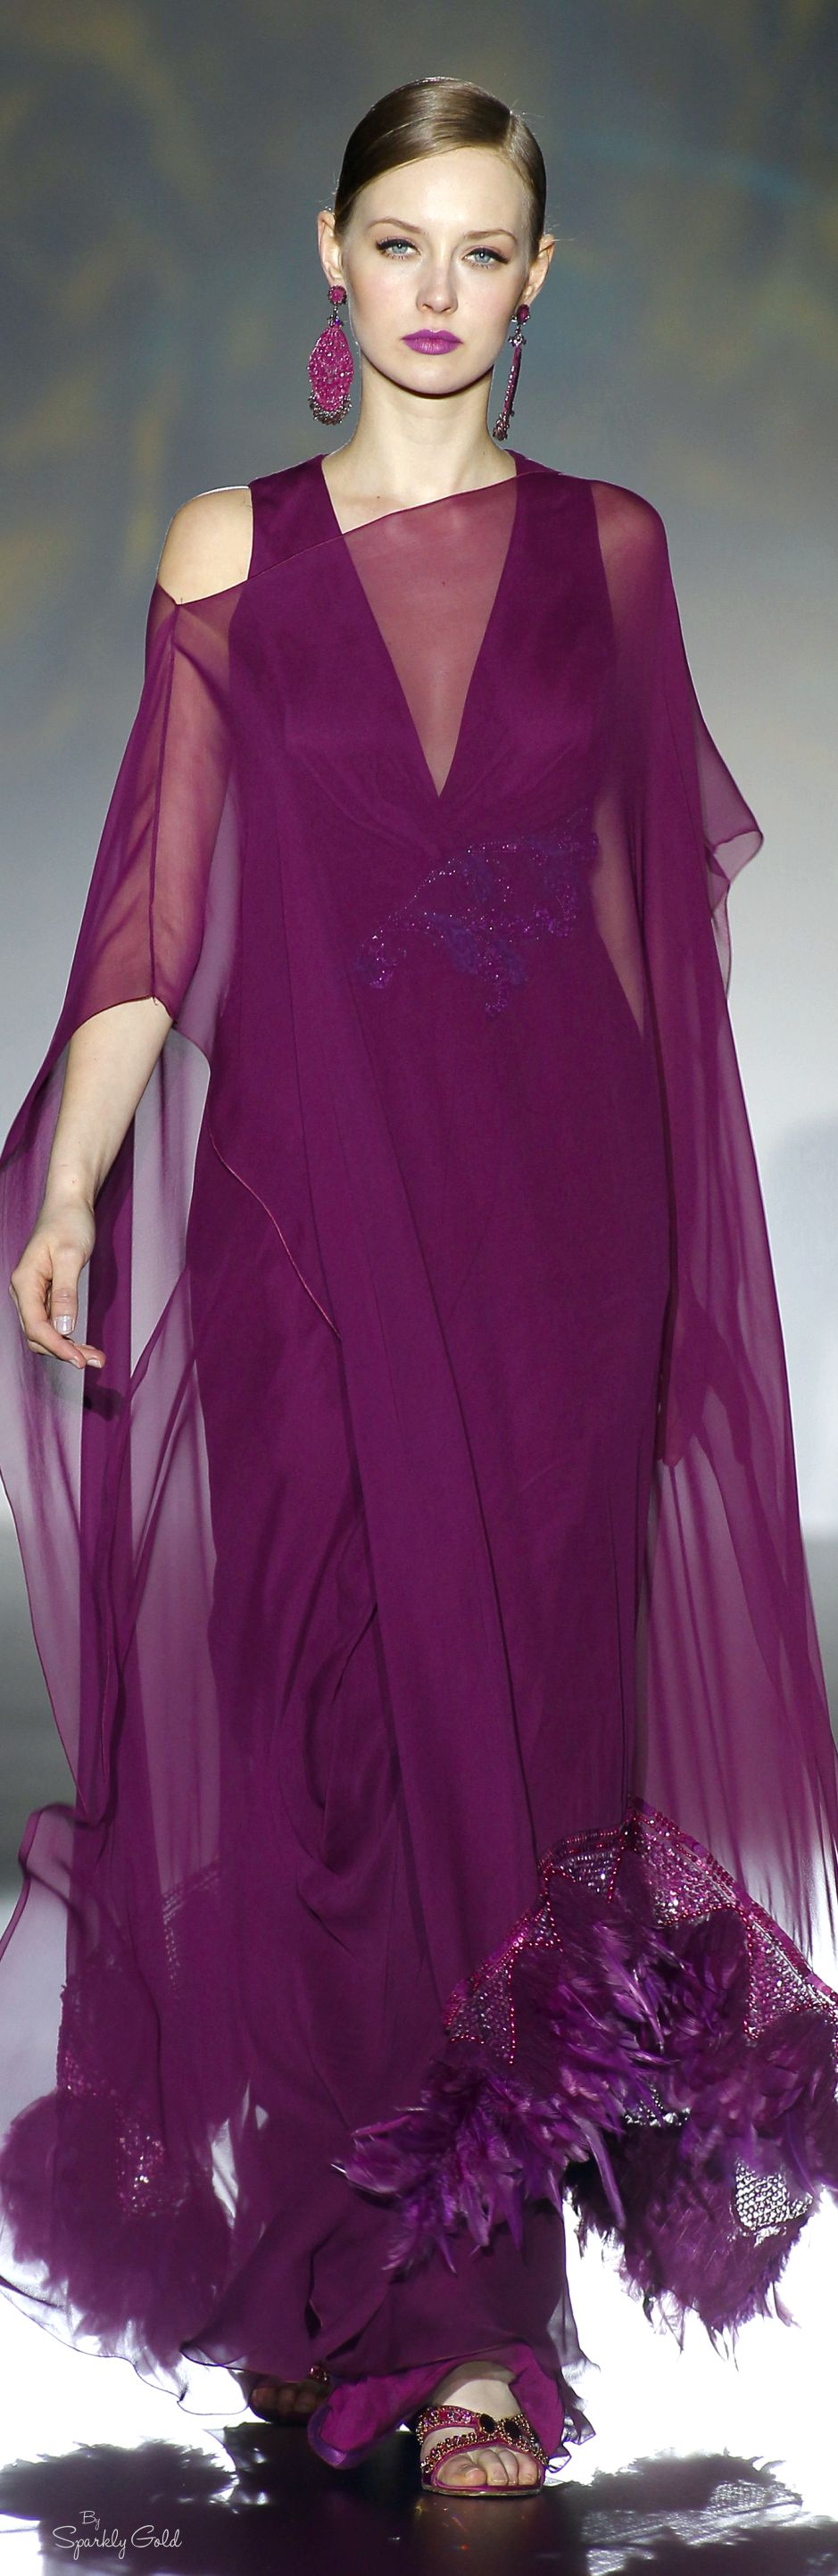 Patricia avendaño gorgeous plum gown is light as a feather